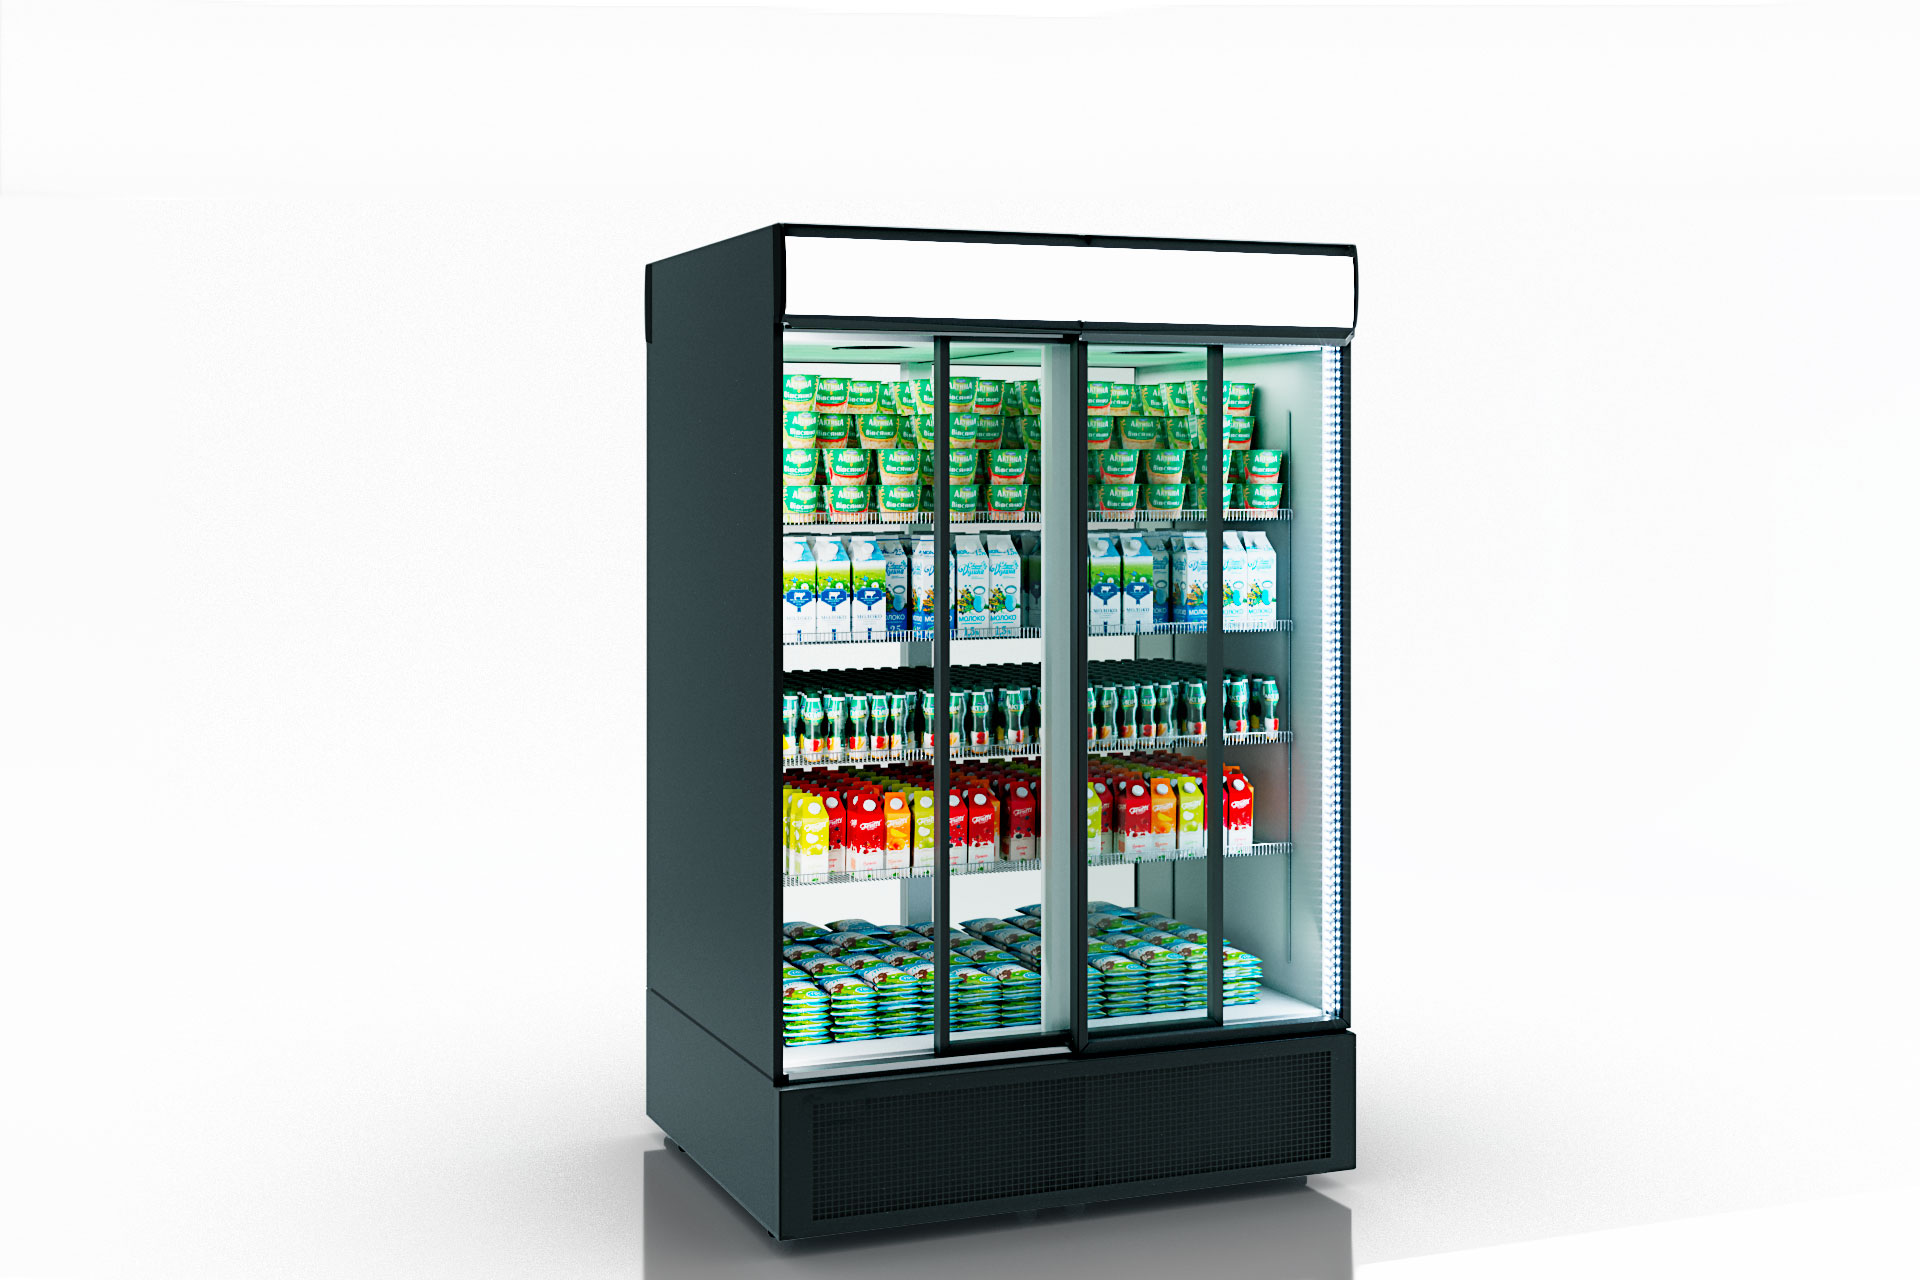 Refrigerated cabinets Kansas А2SG 055/085 HT SD 210-D600/D1200A-132